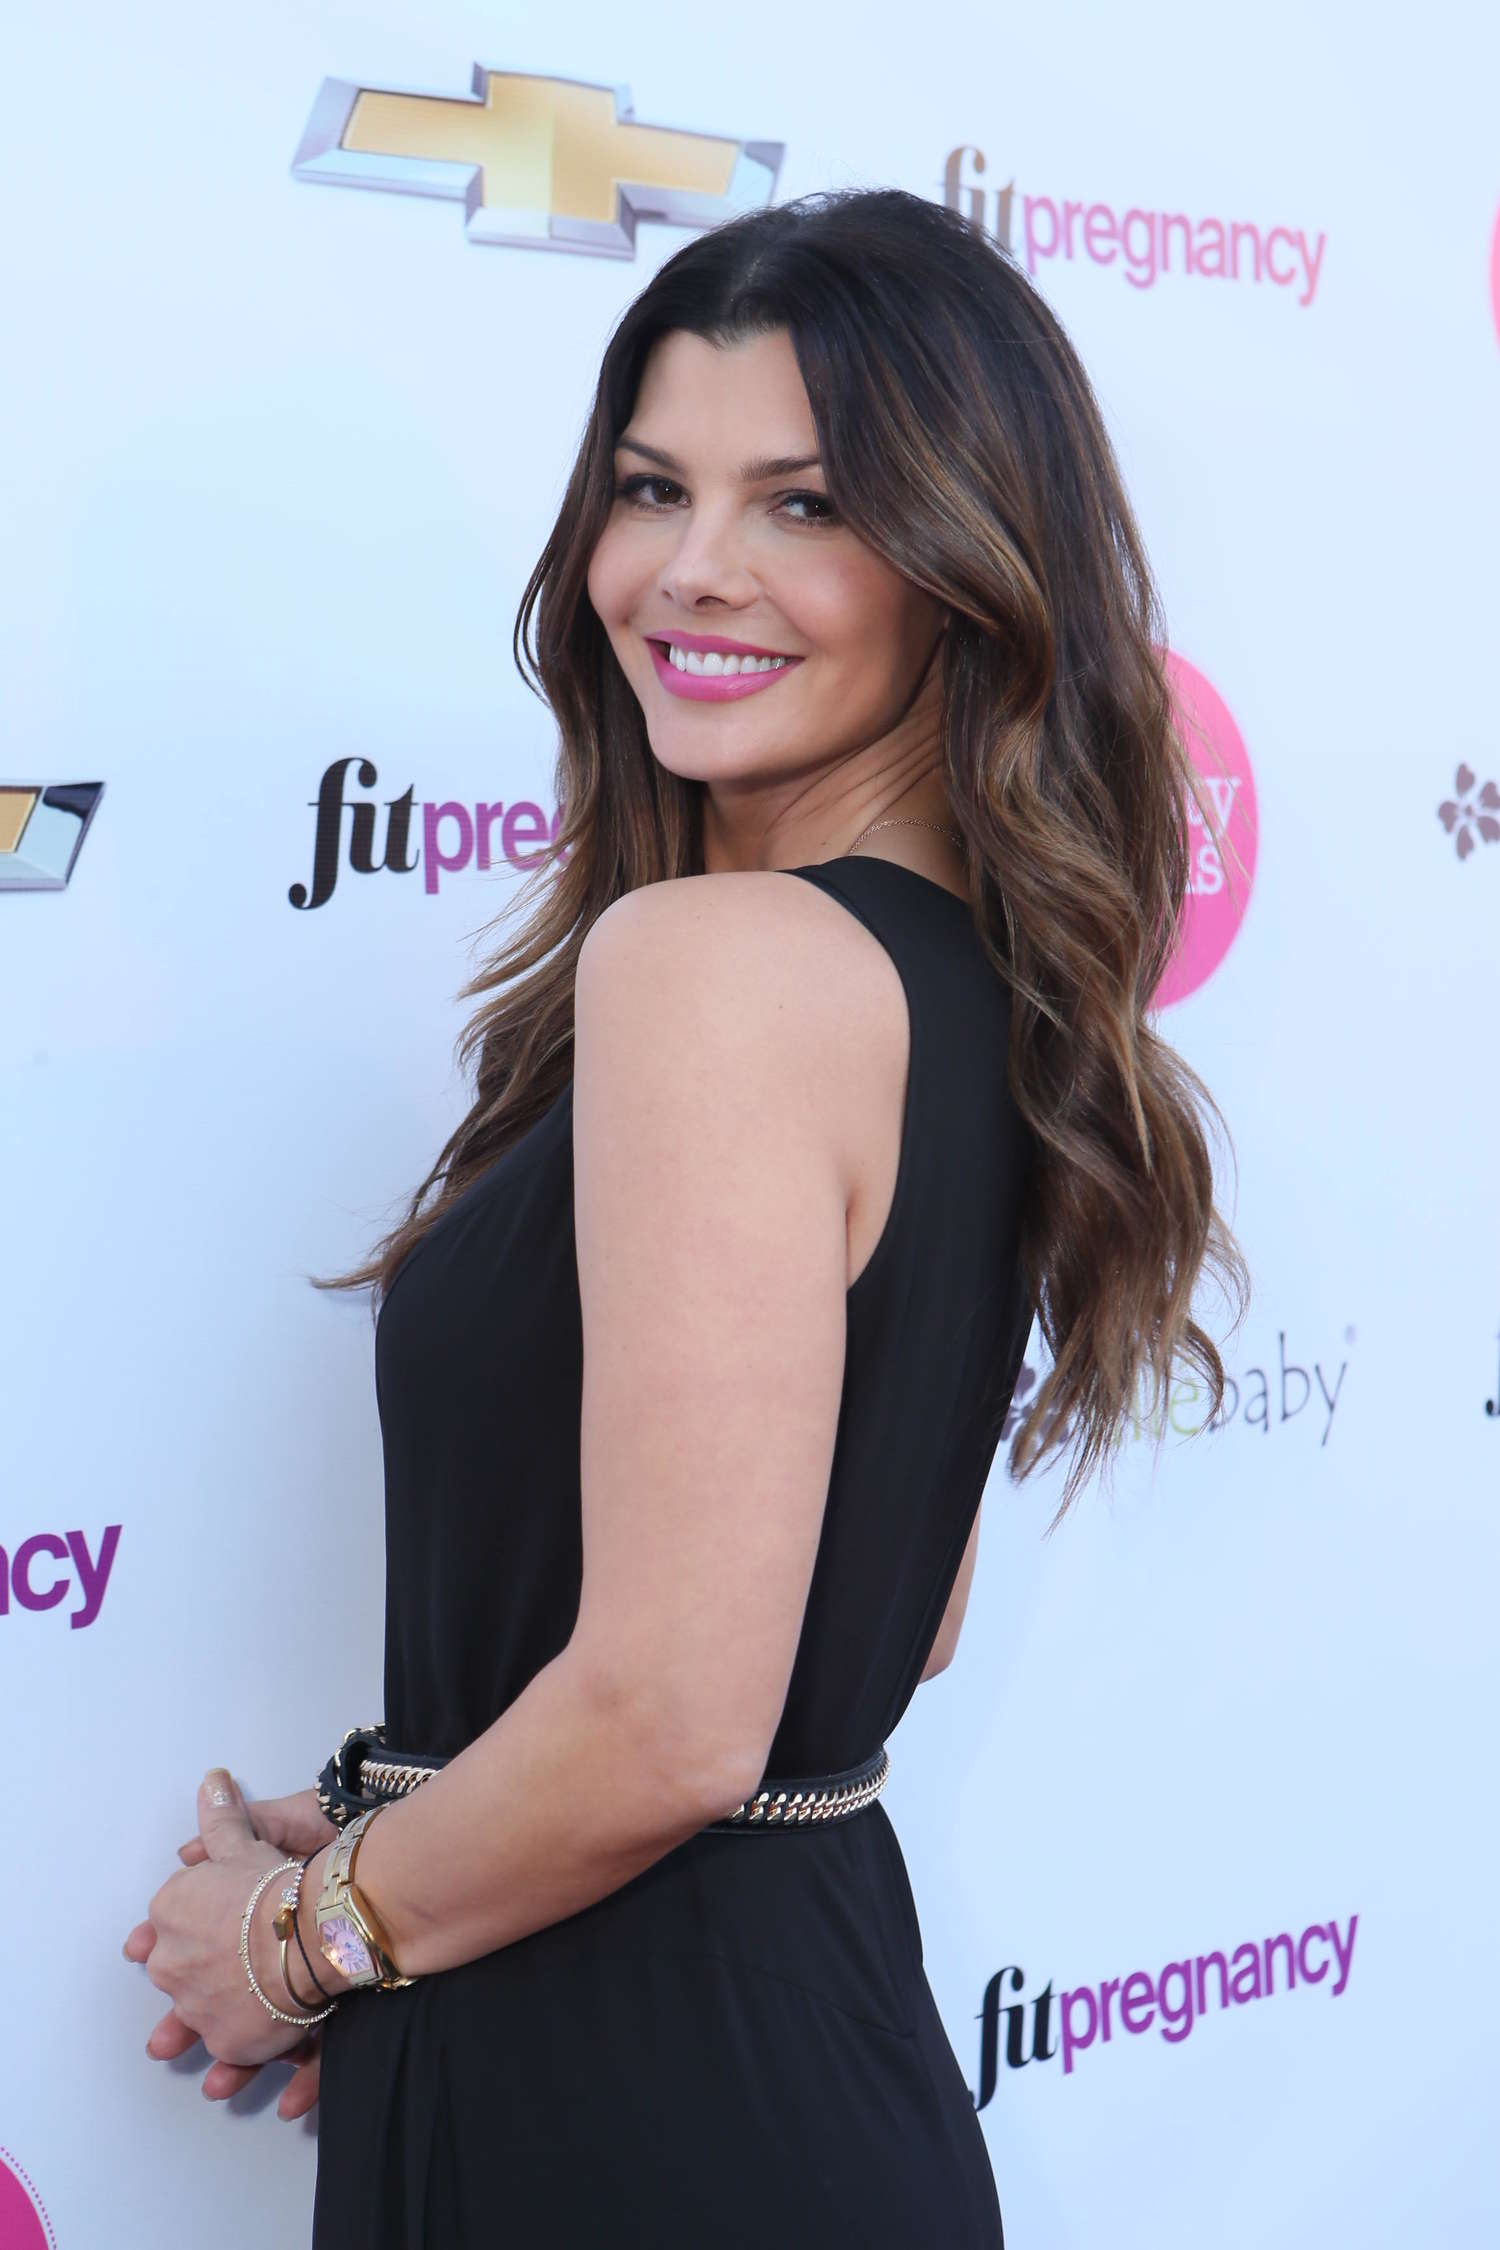 Ali Landry The Biggest Baby Shower Ever in Los Angeles